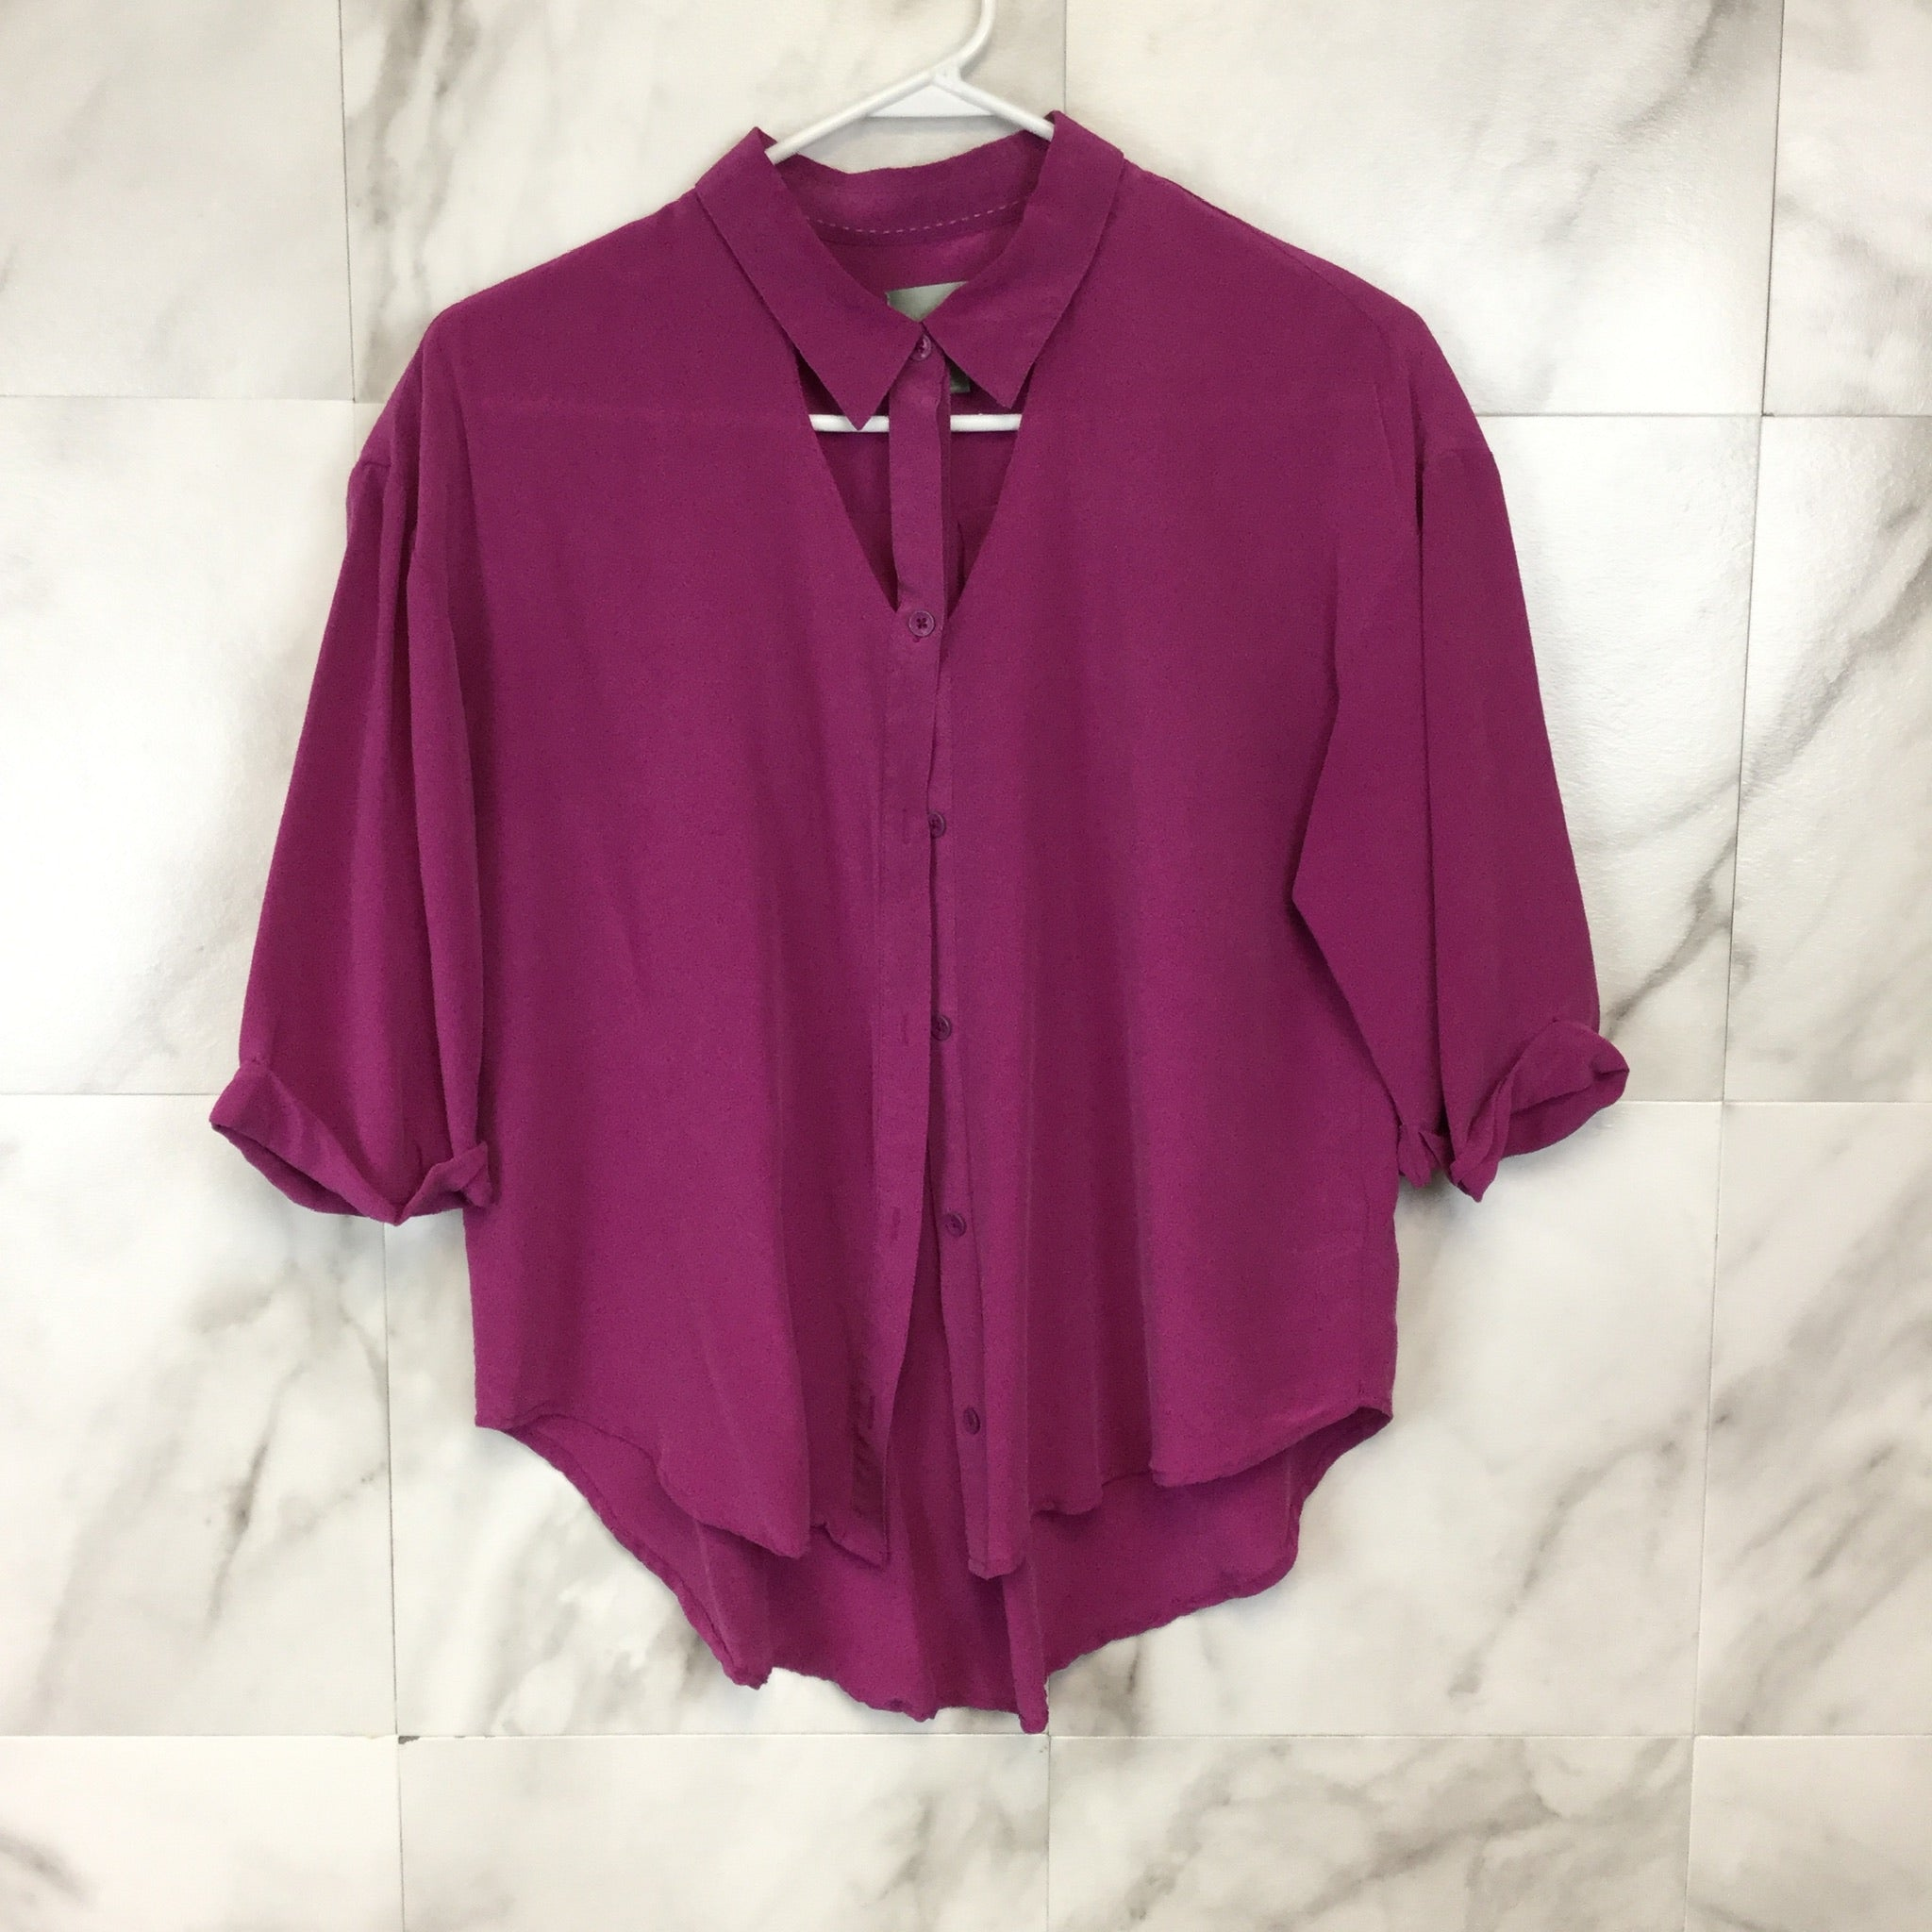 Anthropologie Maeve Mairead Silk Blouse - Size S